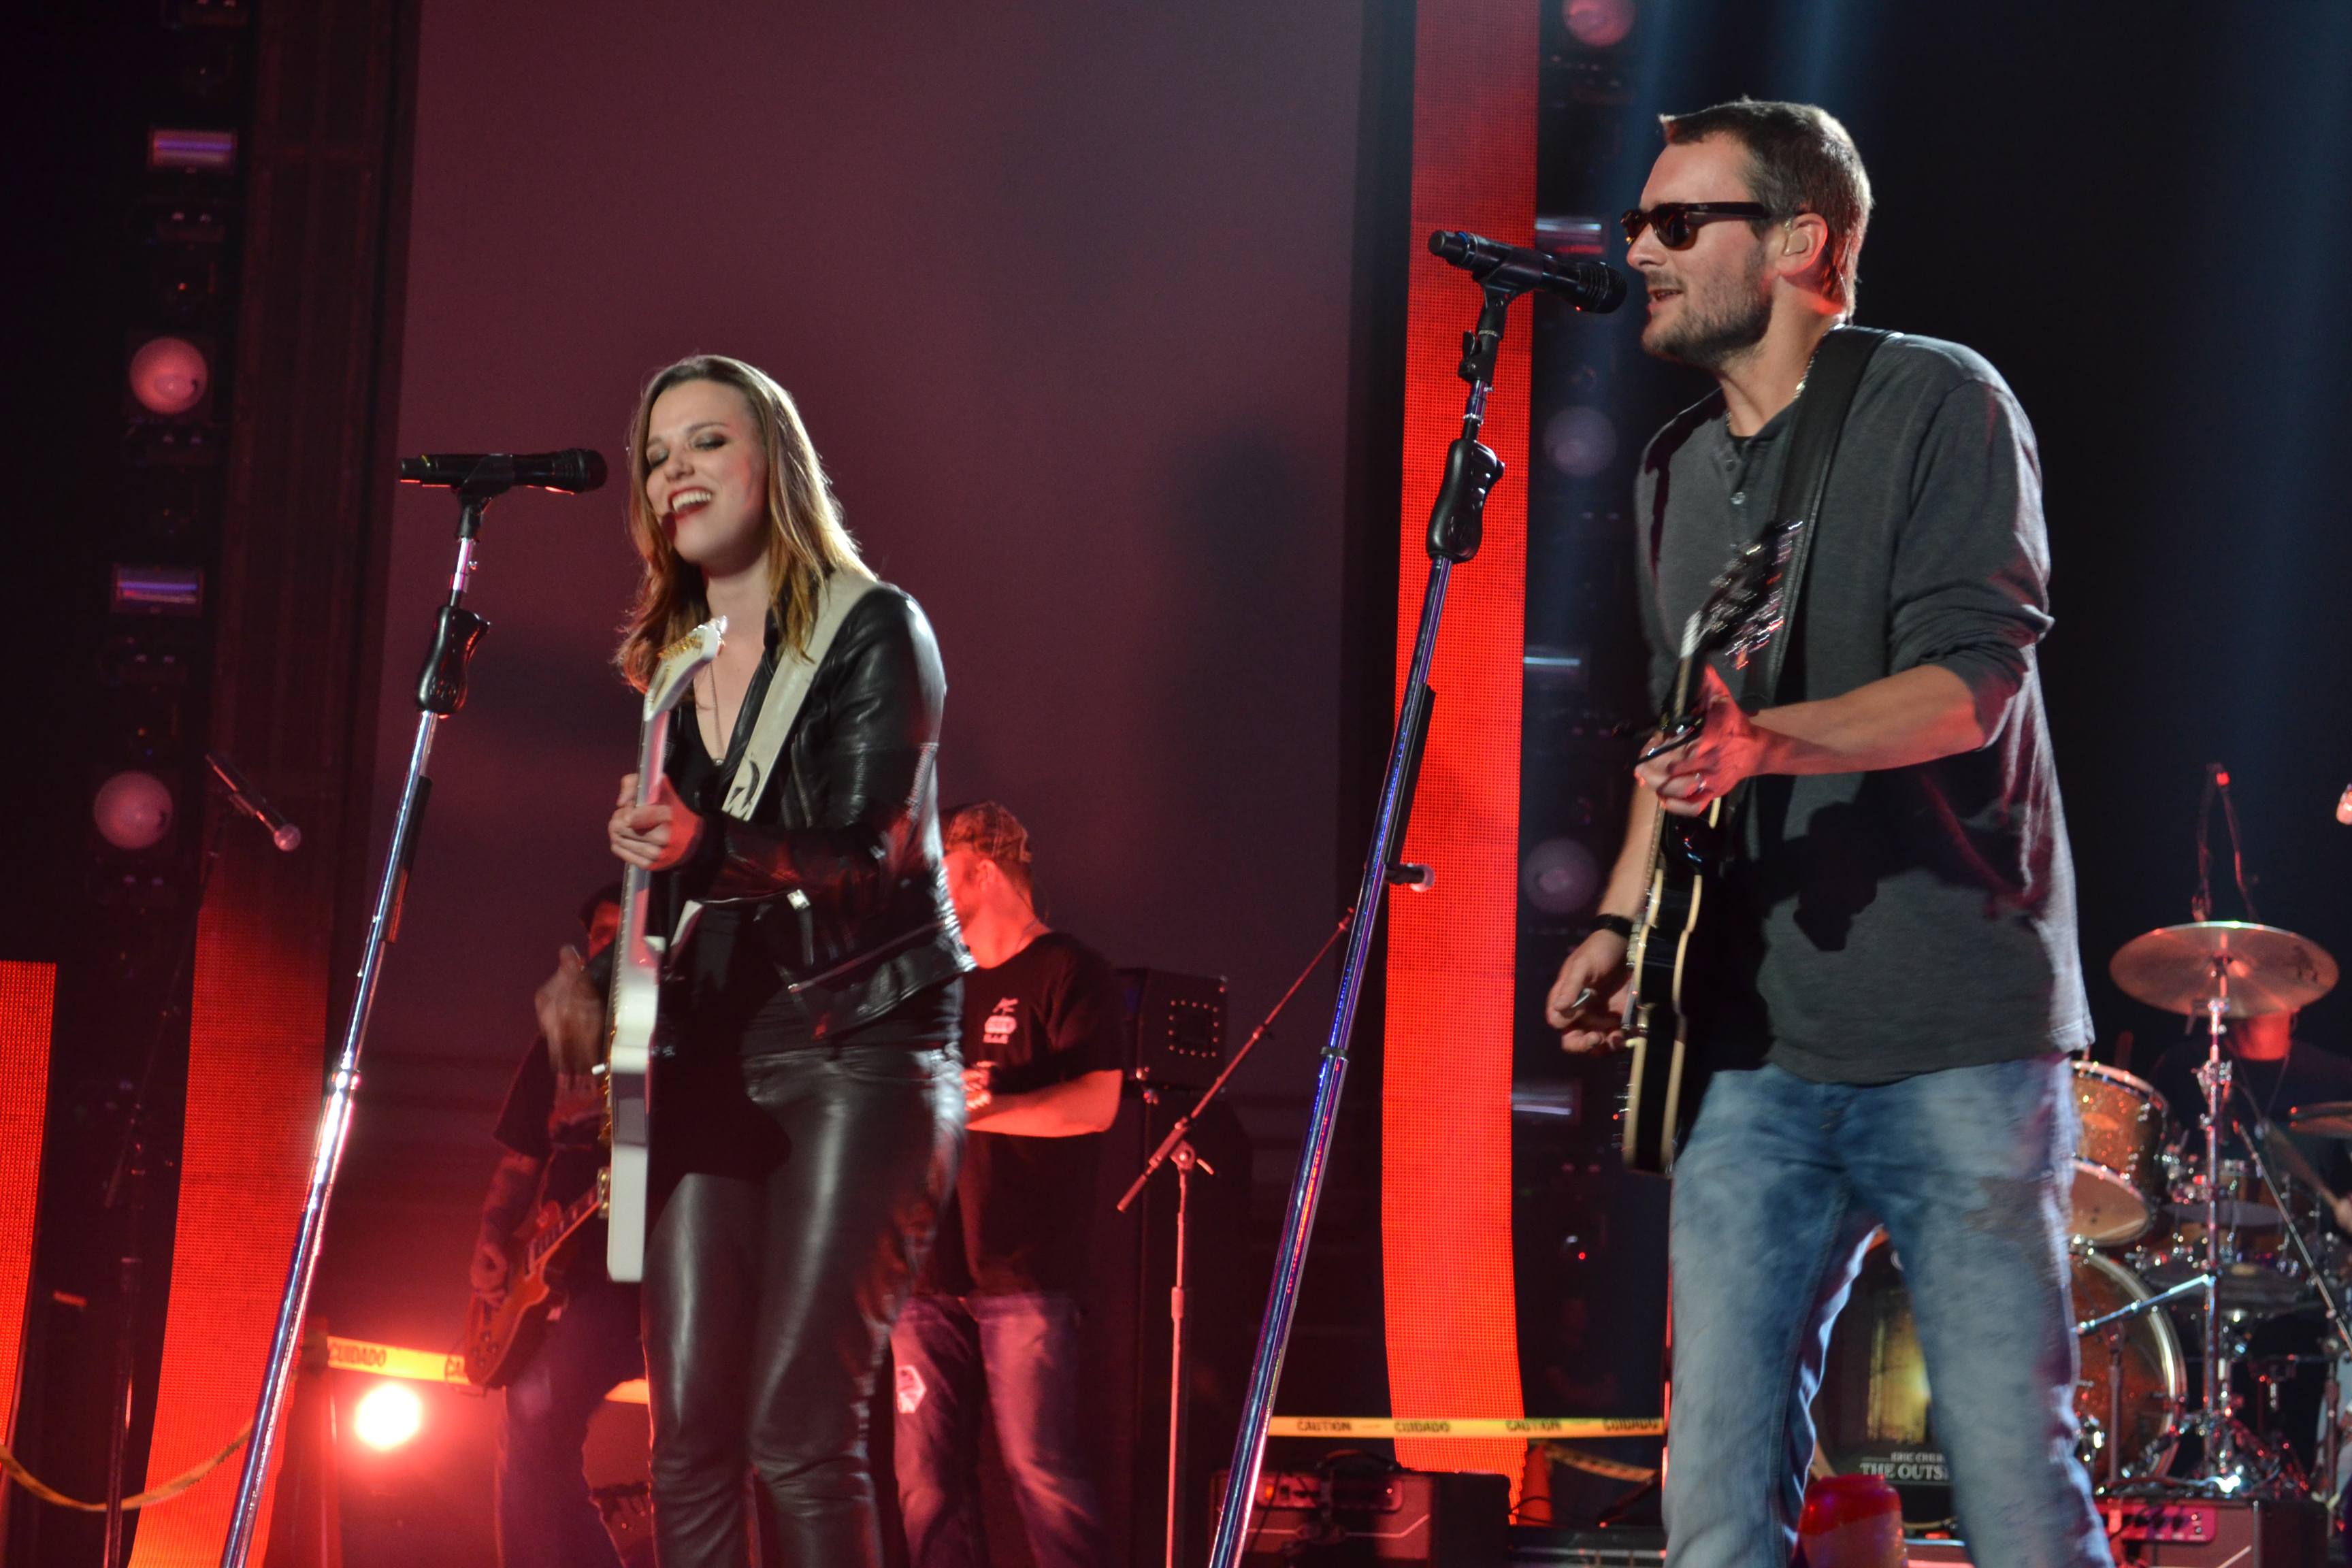 Lizzy Hale Eric Church by nashville